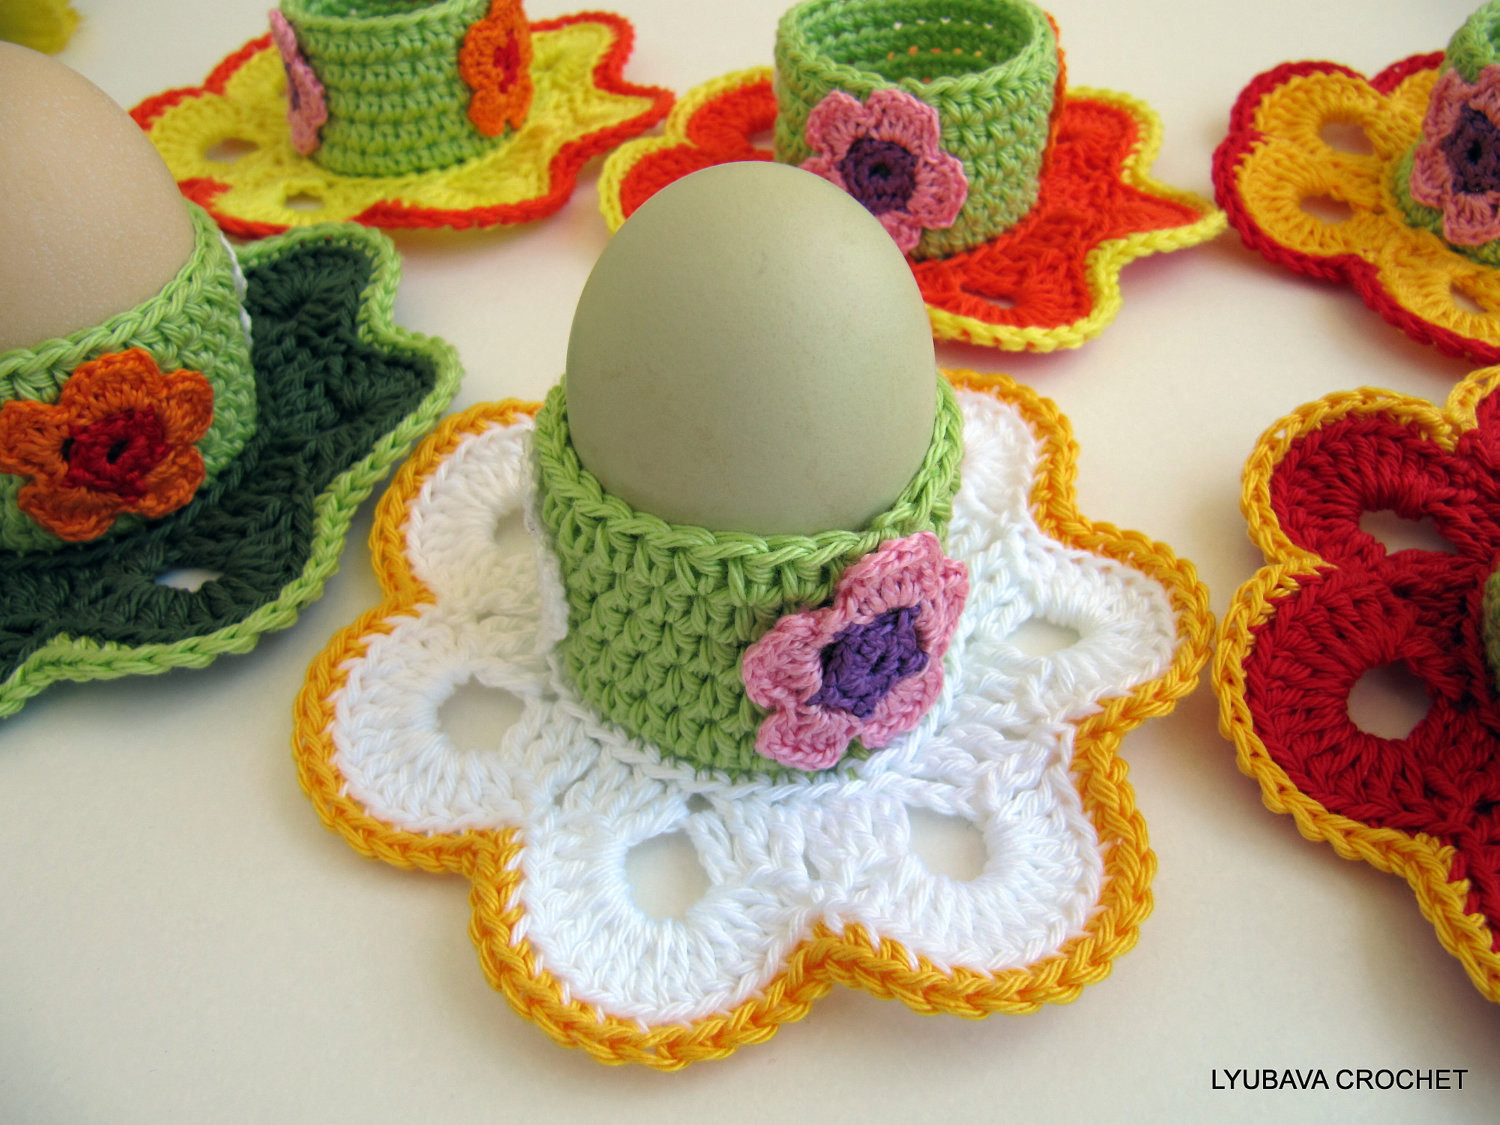 Crochet Easter Eggs Lovely Crochet Pattern Egg Holder Easter Flowers Easter Of Incredible 43 Ideas Crochet Easter Eggs